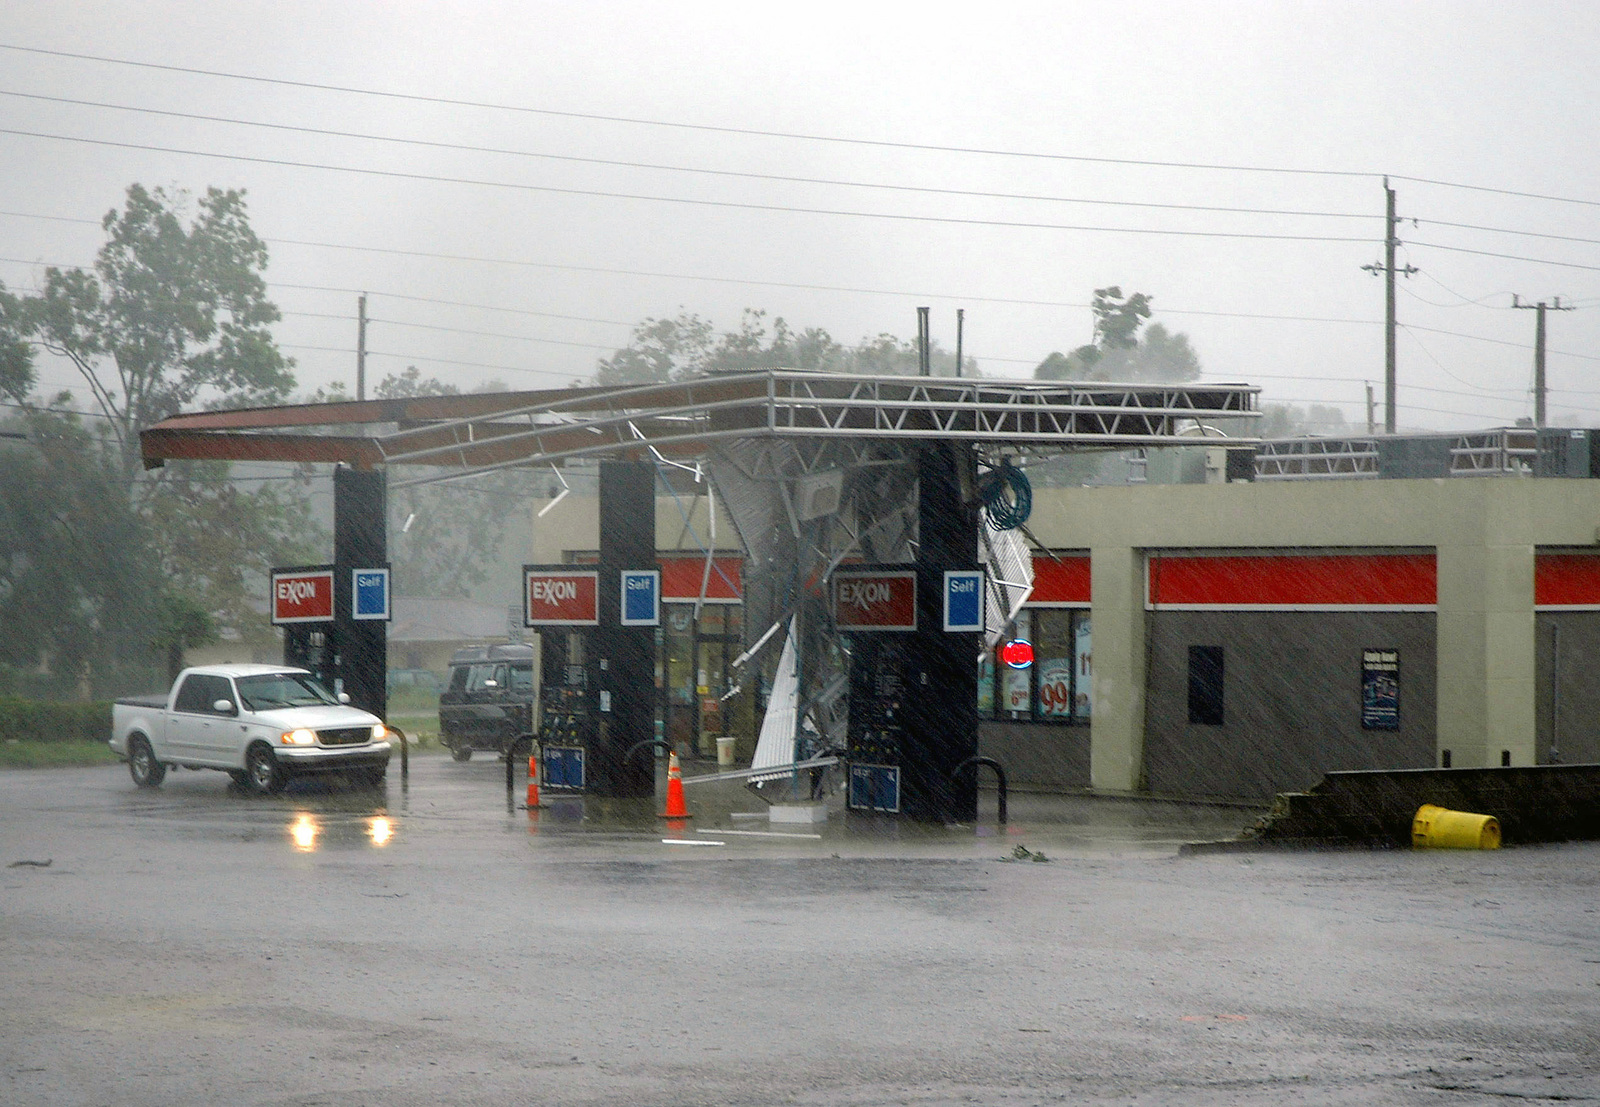 An Exxon gas station remains open despite losing its roof